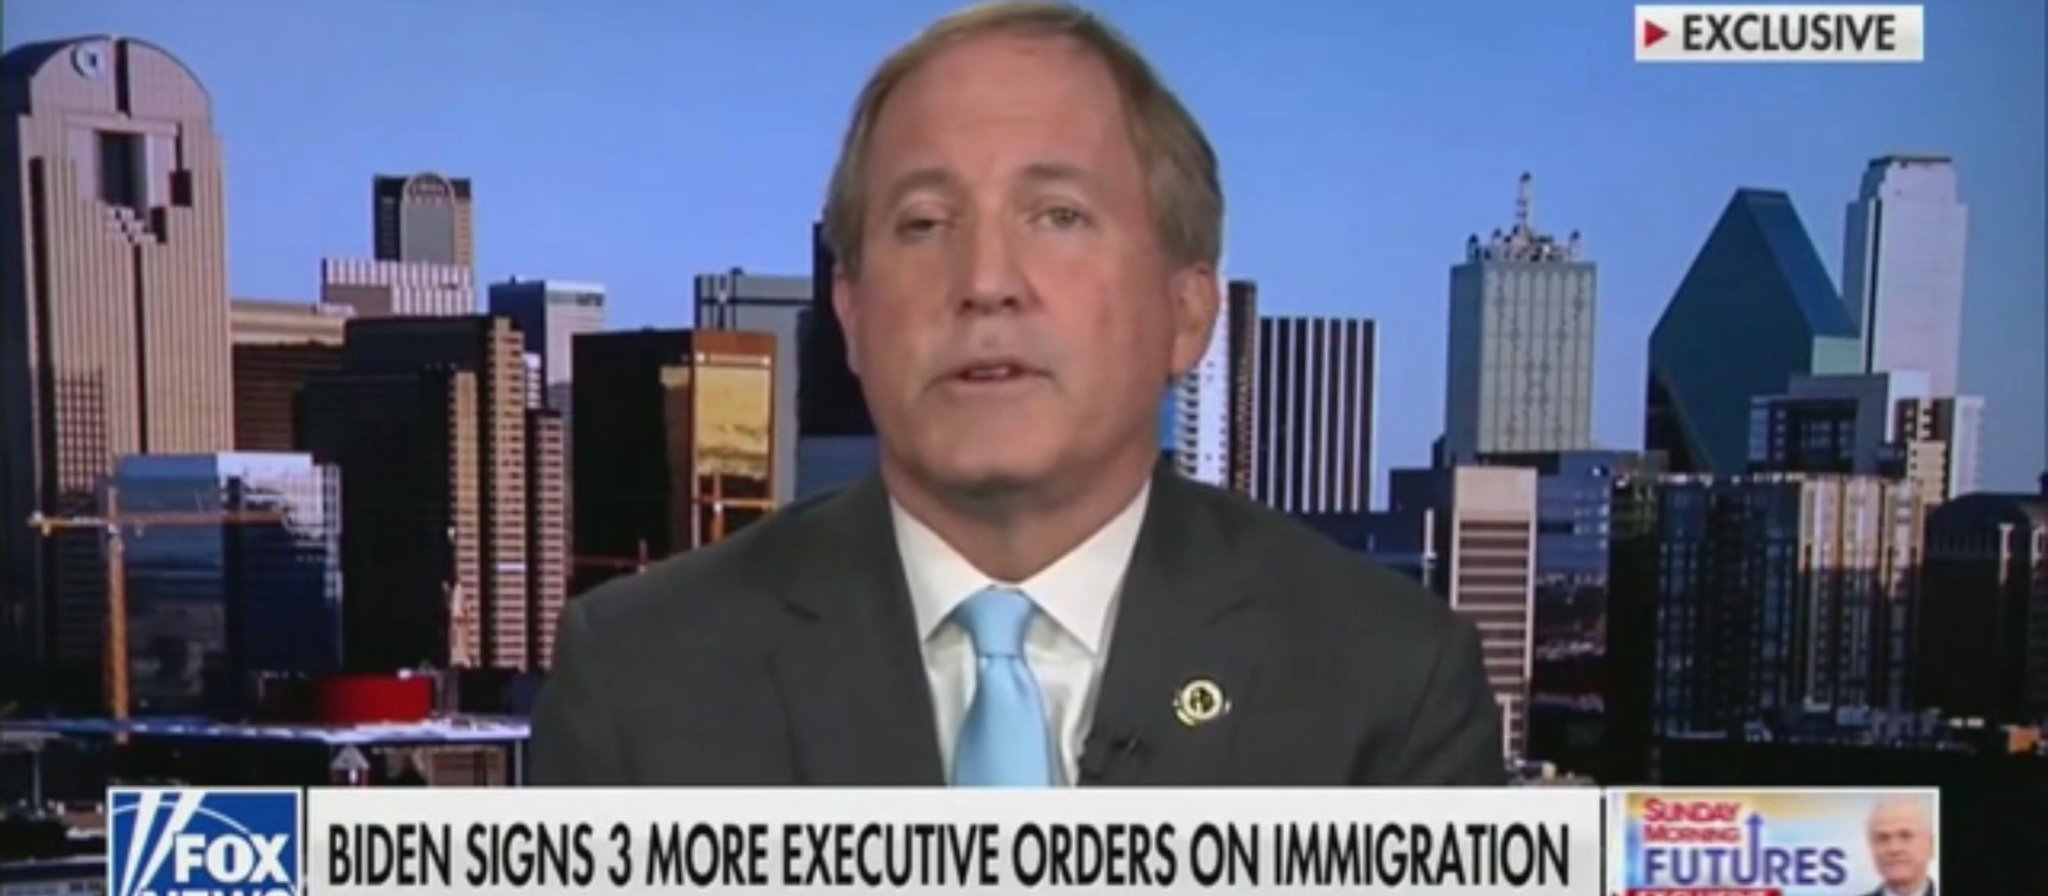 'Why Must silent Non-Citizens Be Treated Higher?': Texas AG Blasts Biden Resolution To Vaccinate Illegals